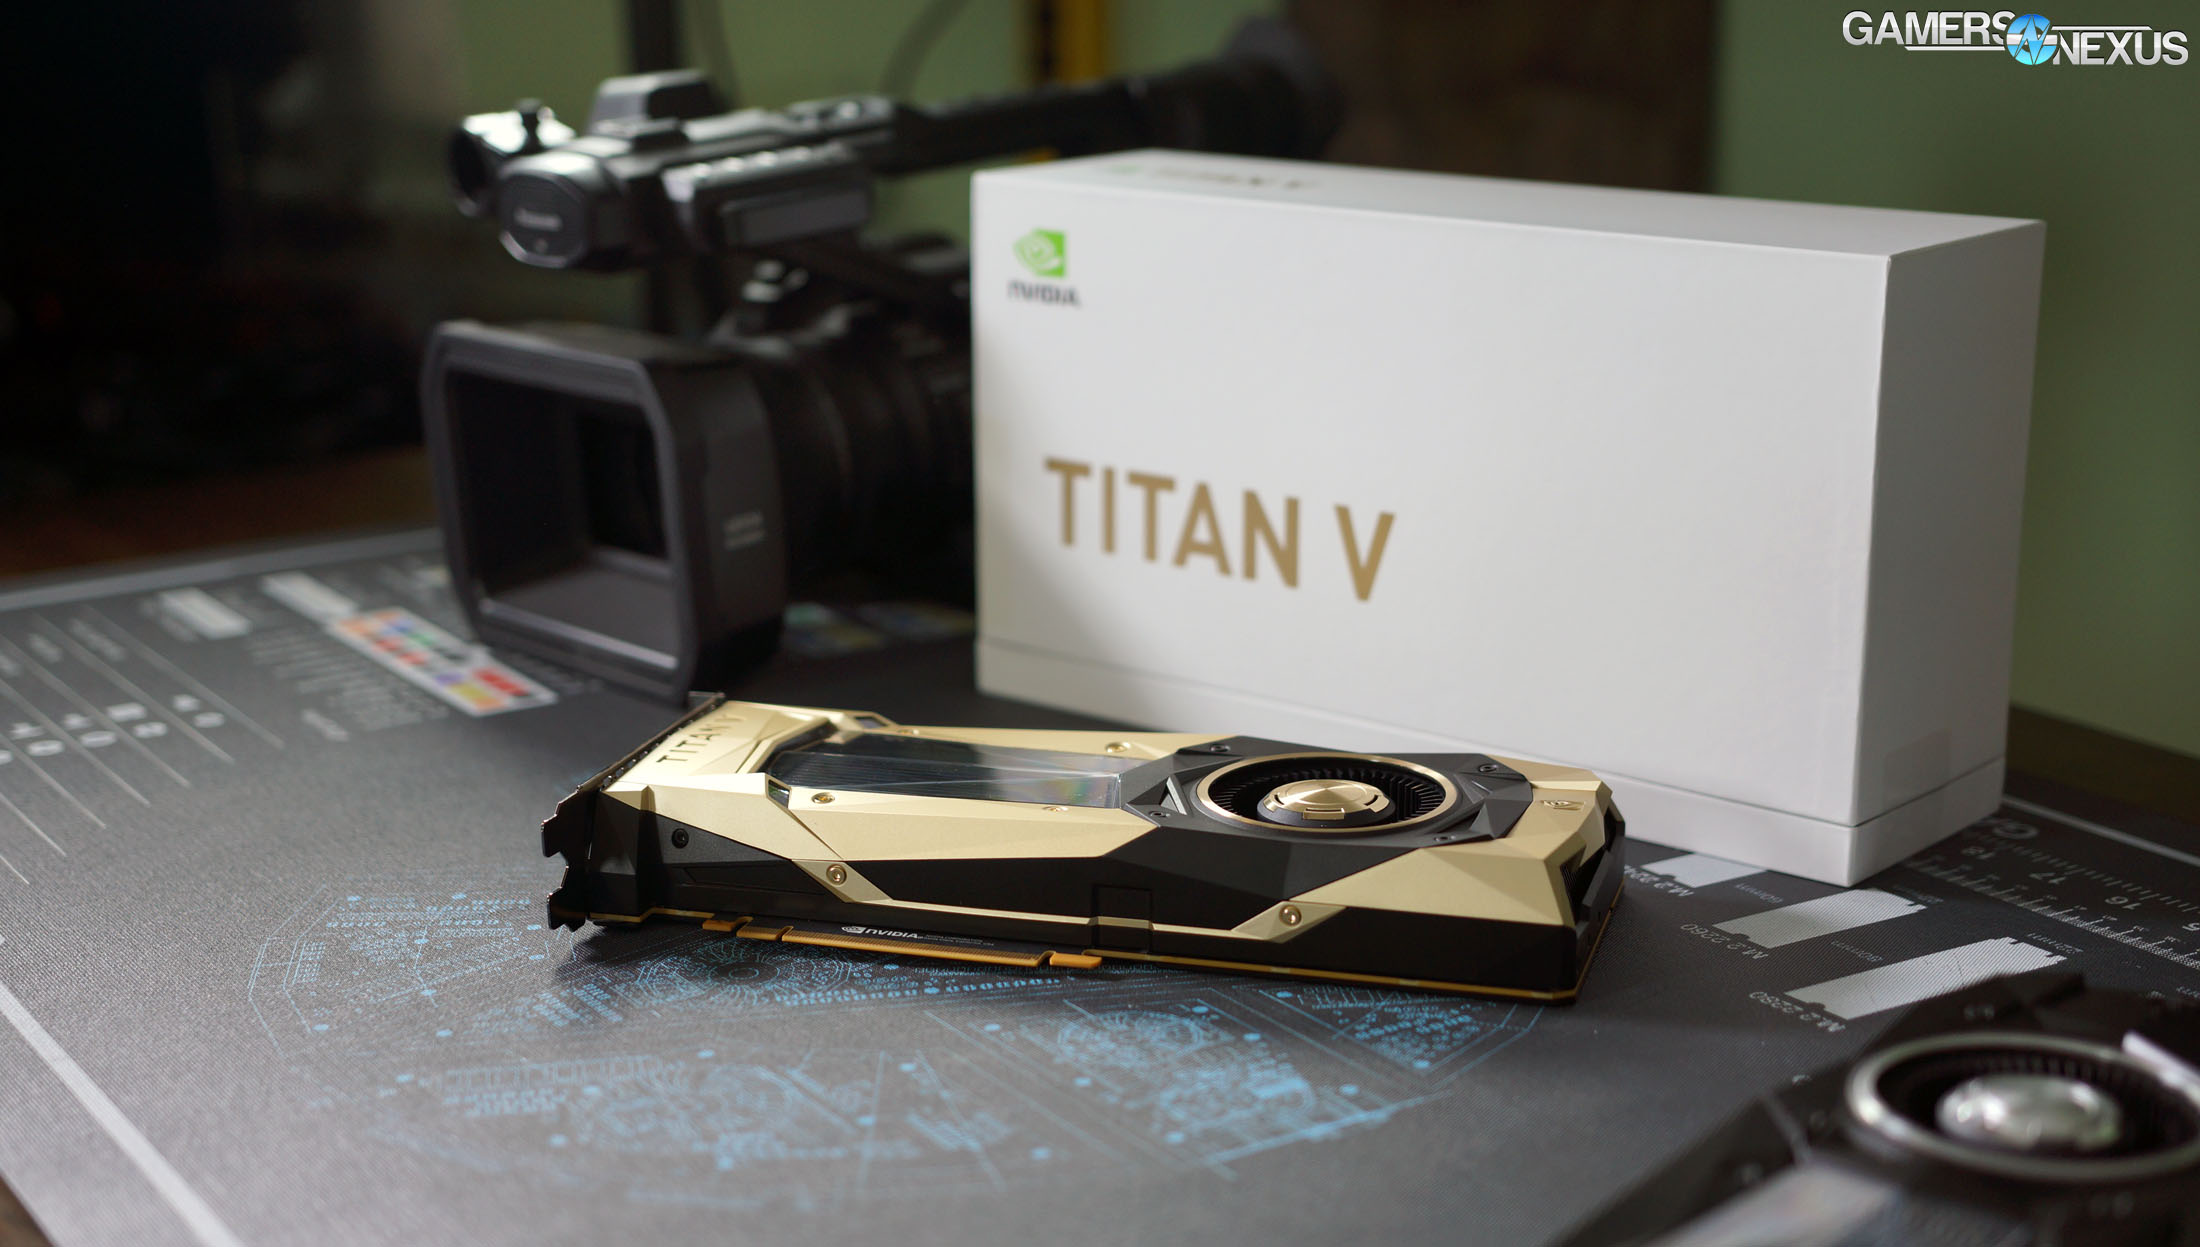 nvidia titan v teardown 0